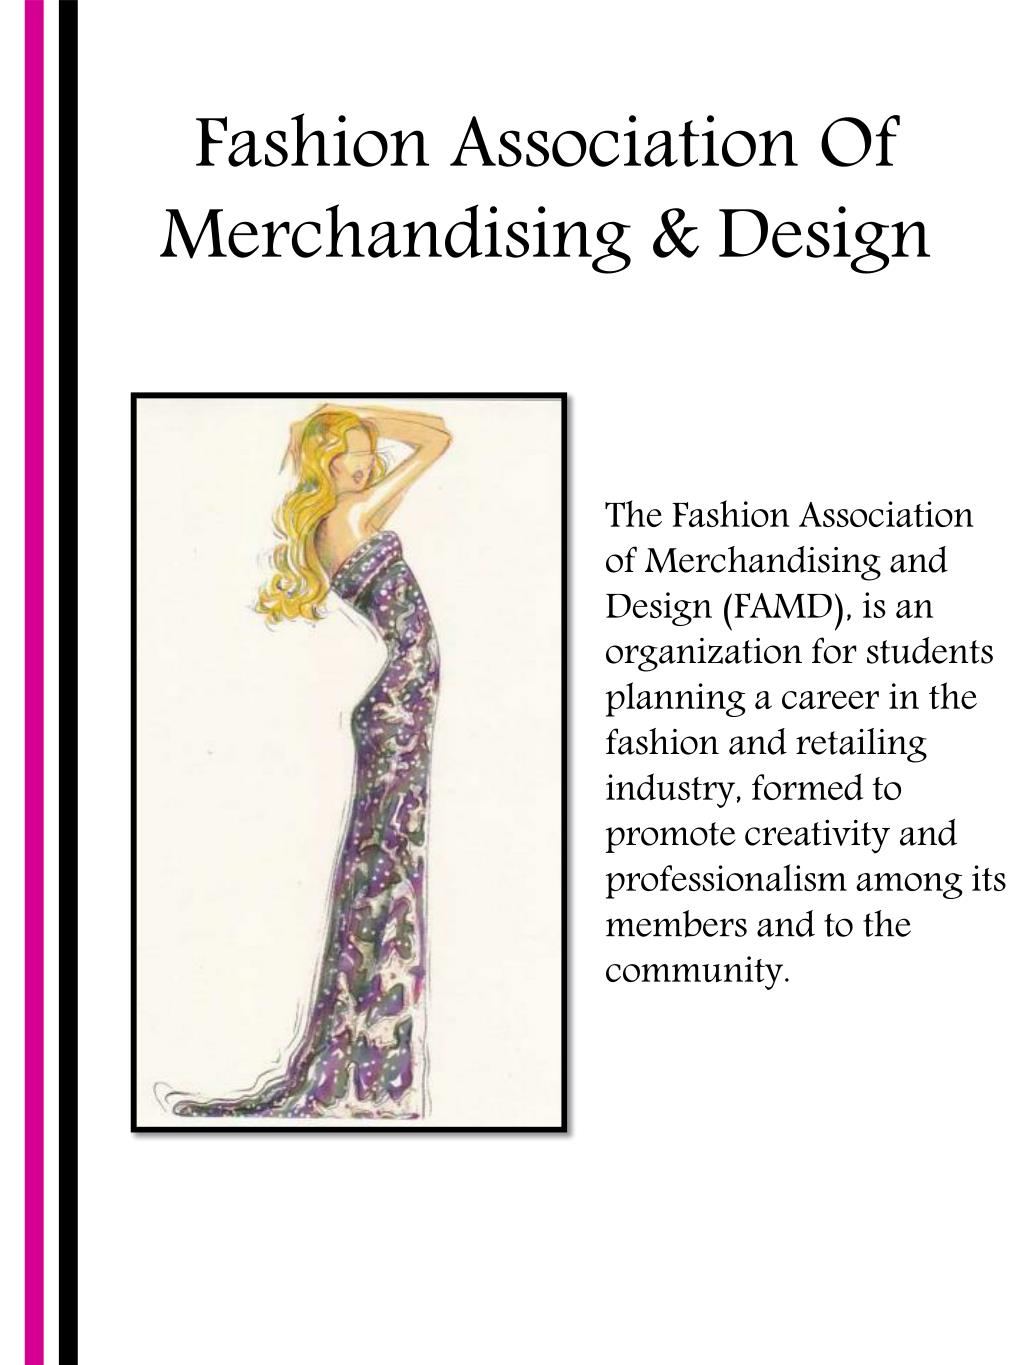 Fashion Association Of Merchandising & Design